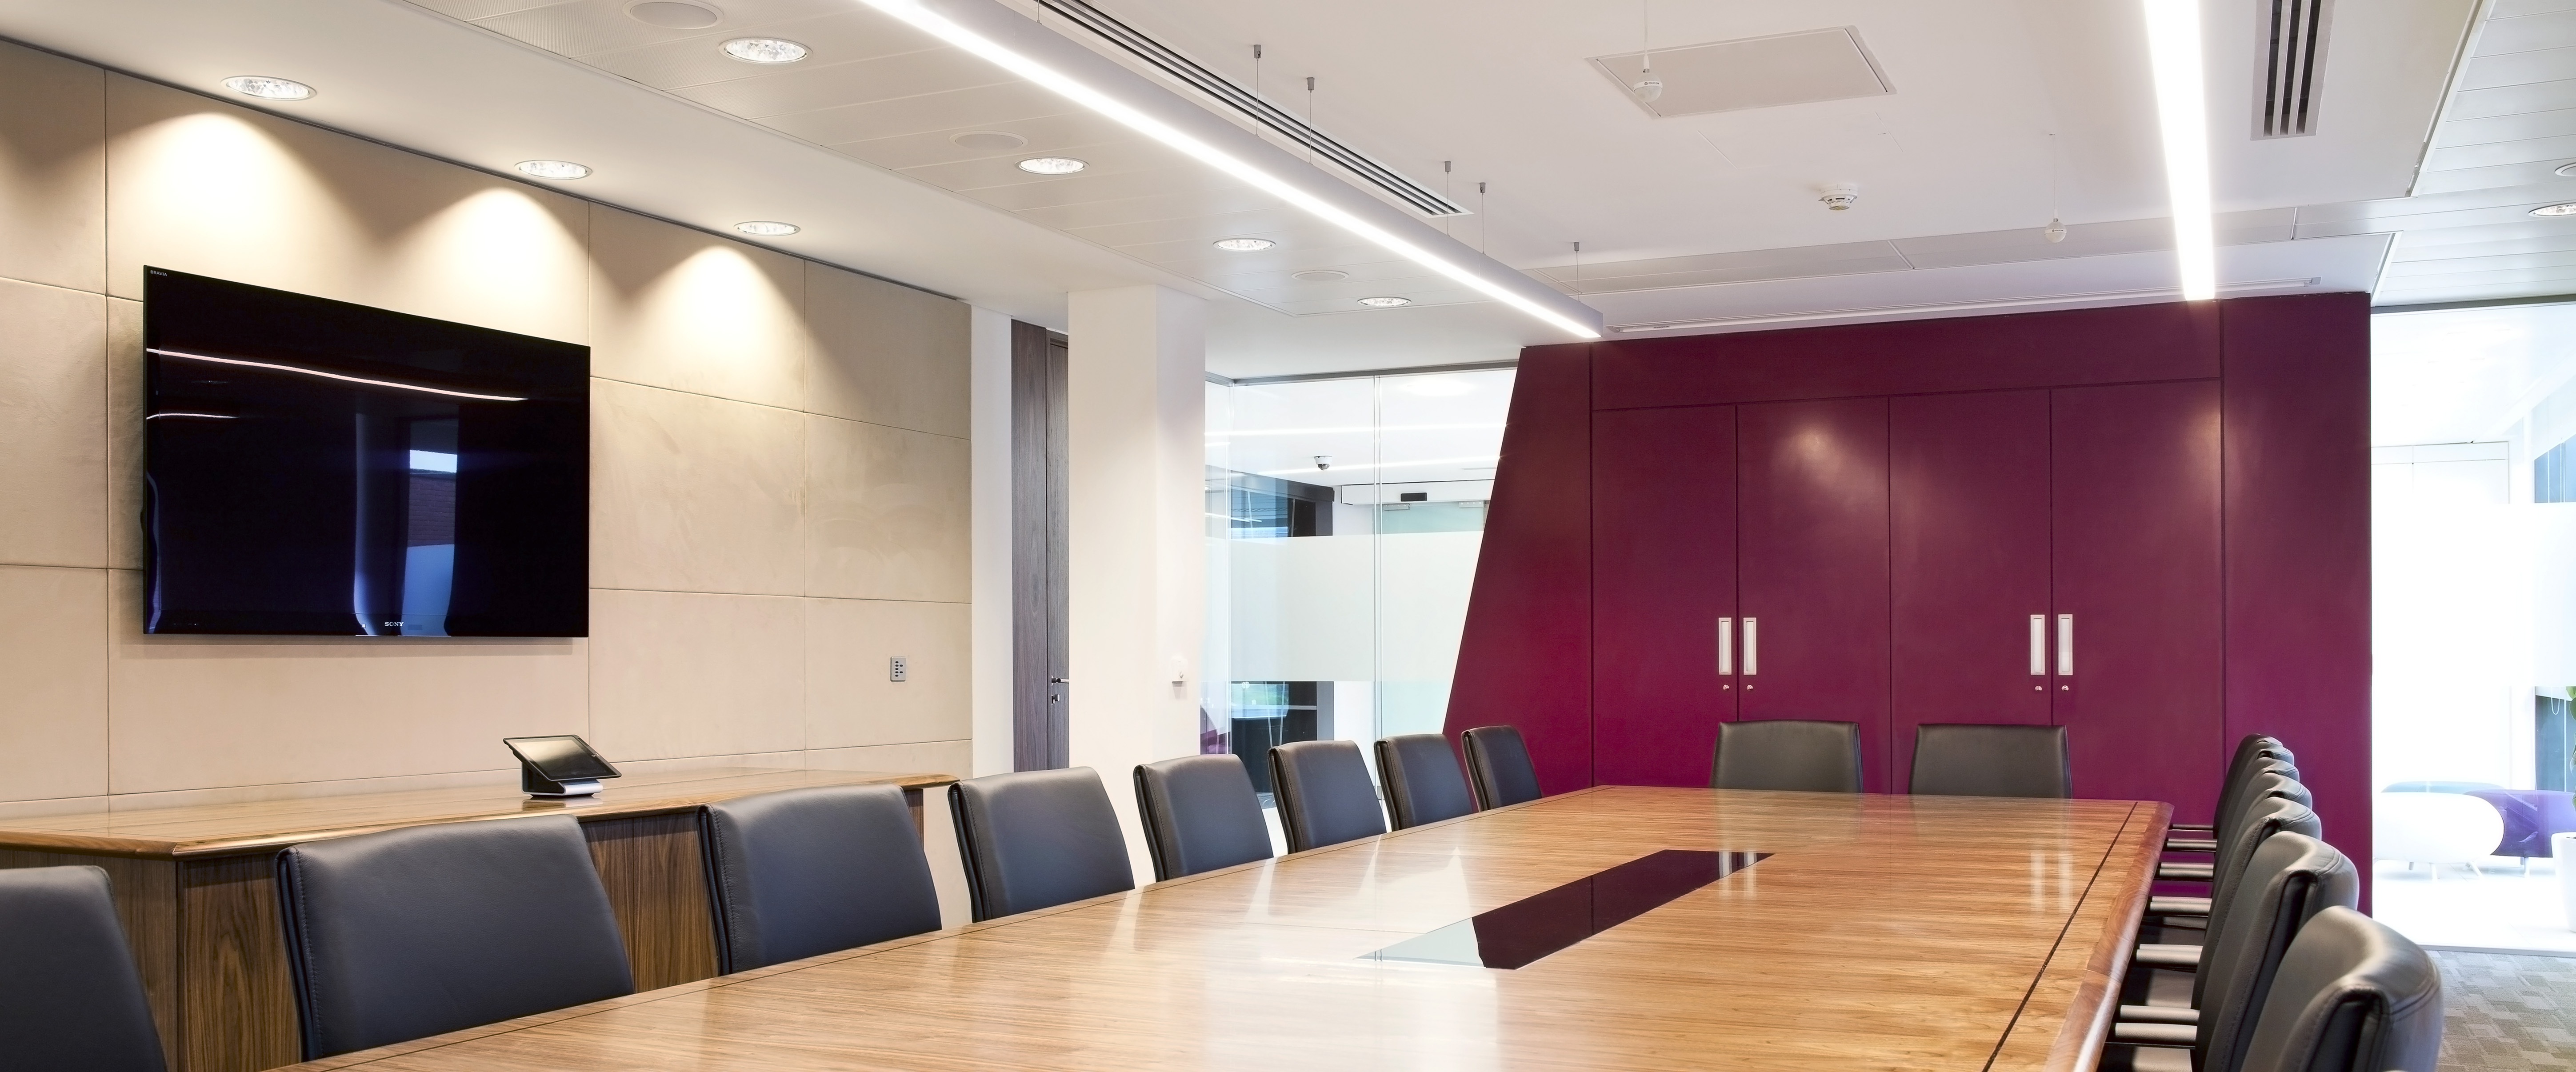 6 Most Common Office Conference Room Mistakes People Make